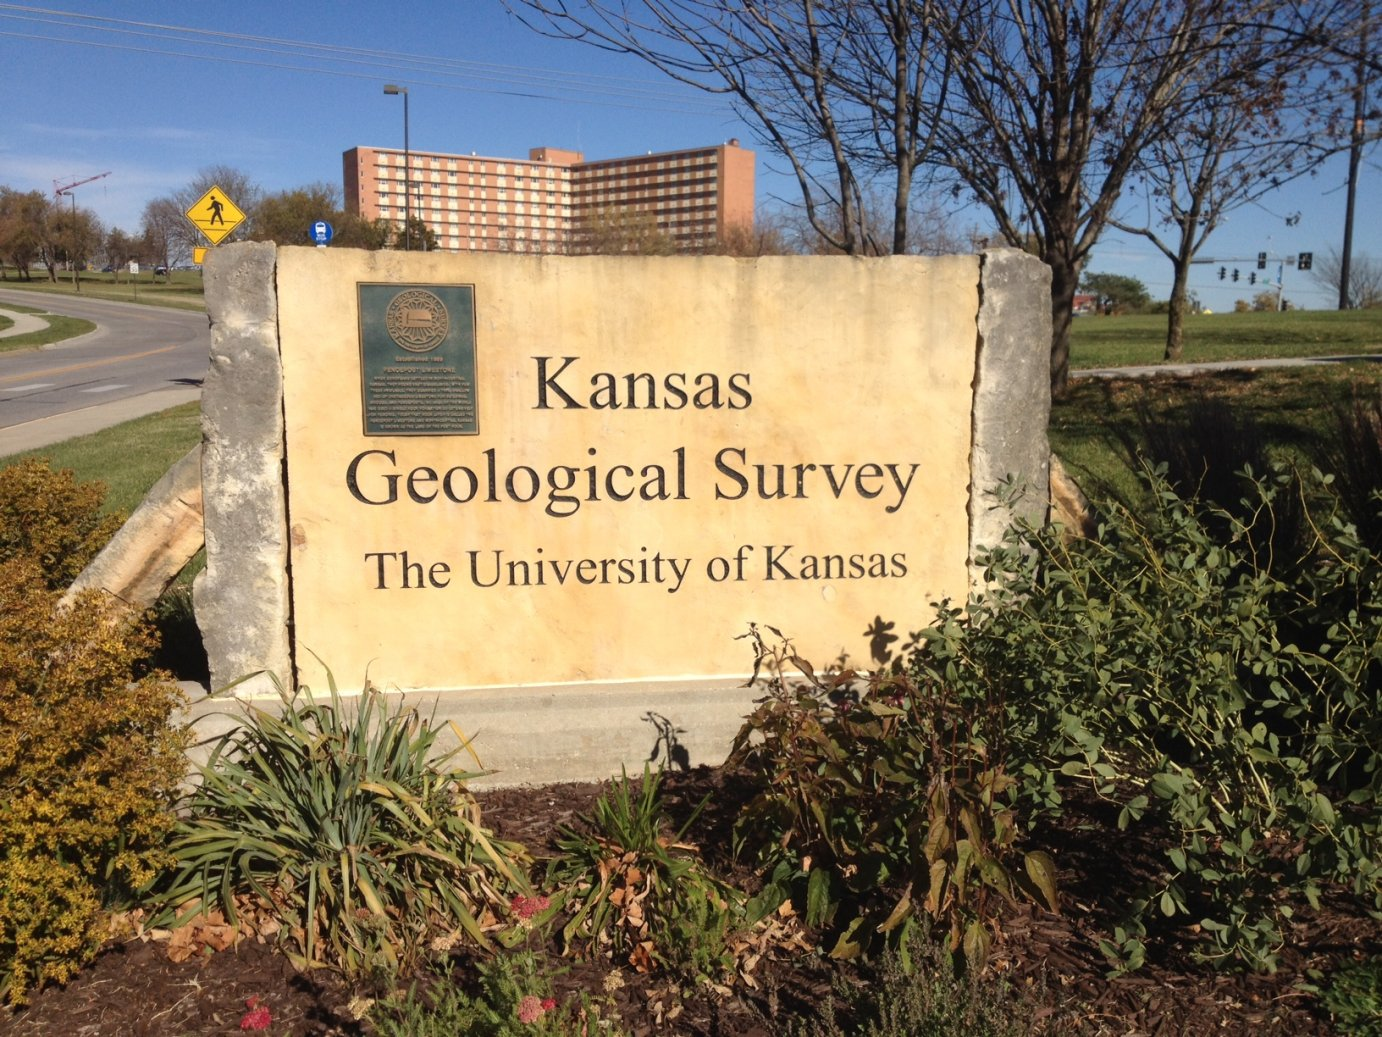 Entrance sign to the Kansas Geological Survey at the University of Kansas.  The survey has installed new monitors in south-central Kansas to record increased seismic activity. (Photo by J. Schafer)